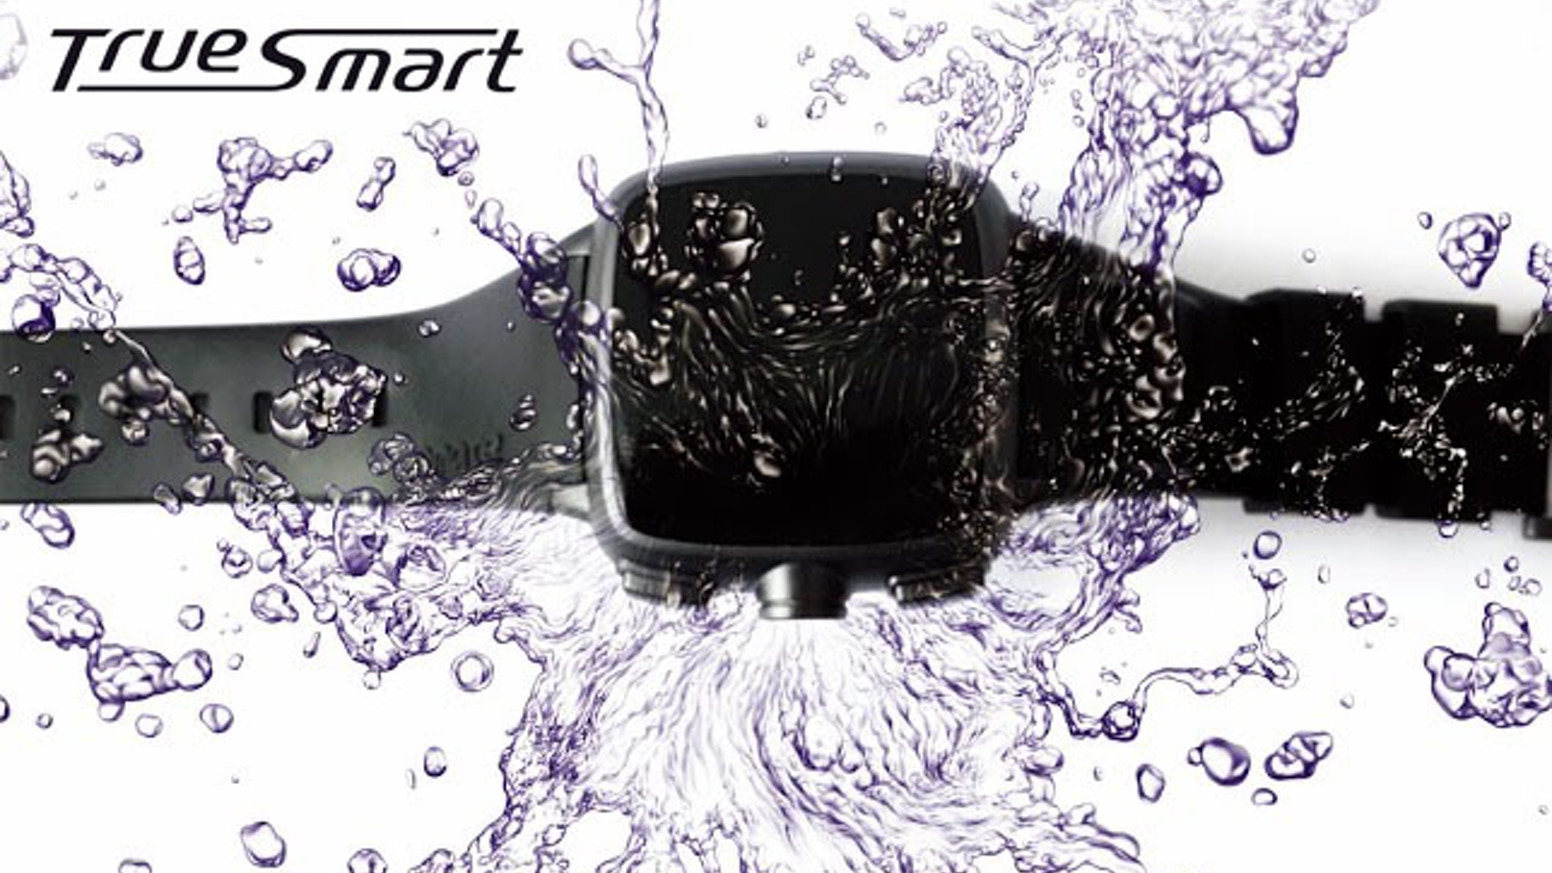 Omate® TrueSmart™ truly standalone water-resistant smartwatch, works independently from and with all smartphones. 3G, Voice & Gestures!